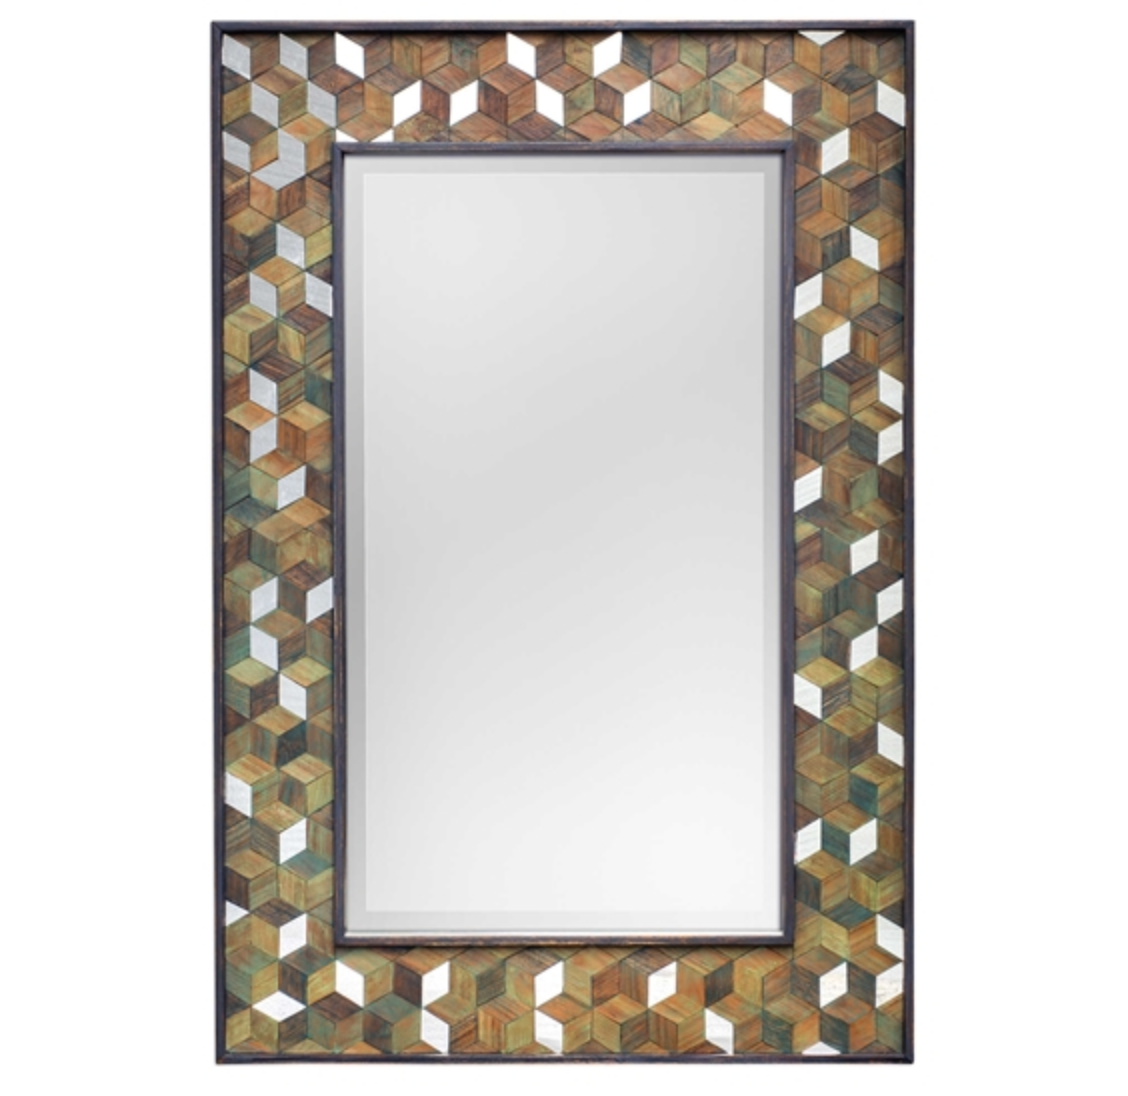 Cadia Mirror - Revibe Designs